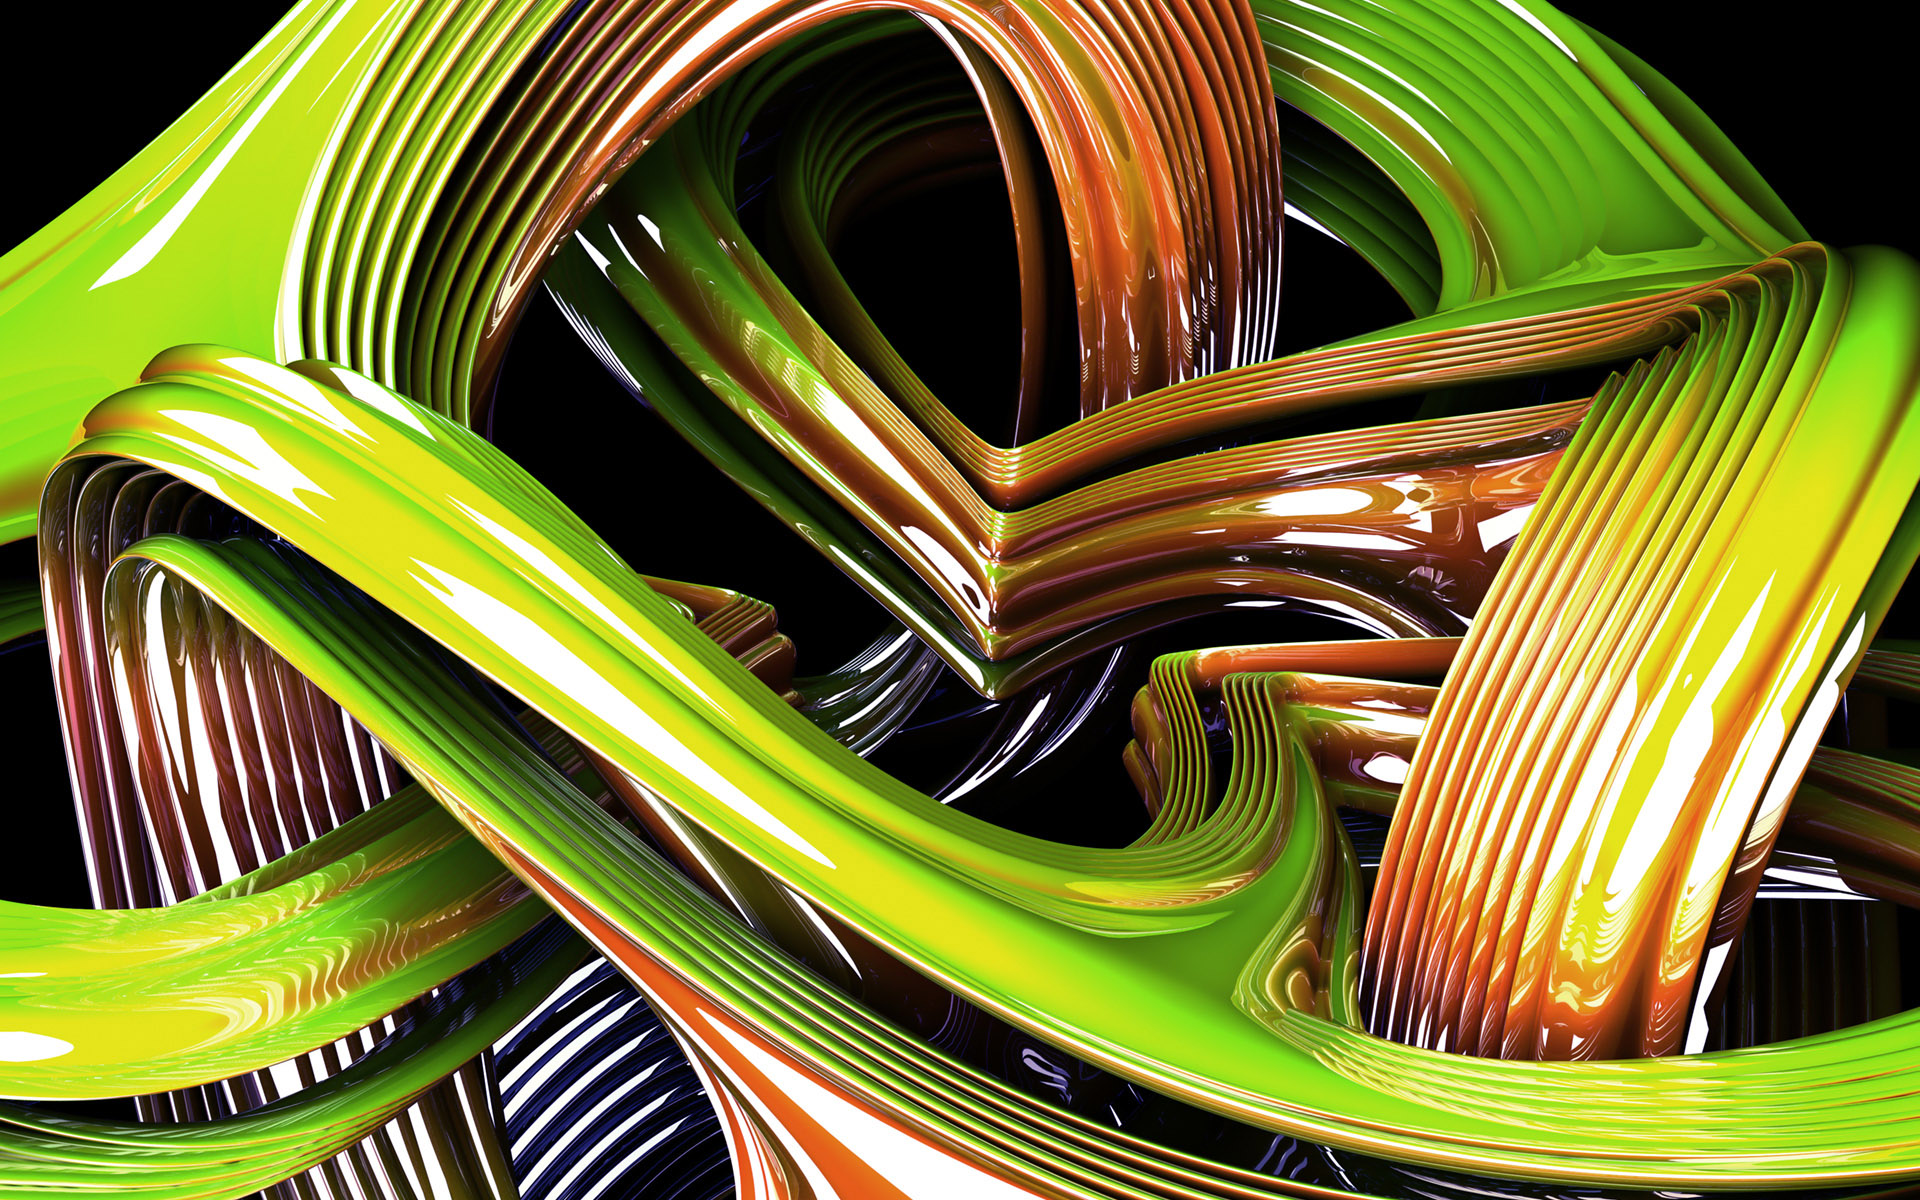 Abstract 3D wallpaper   268319 1920x1200